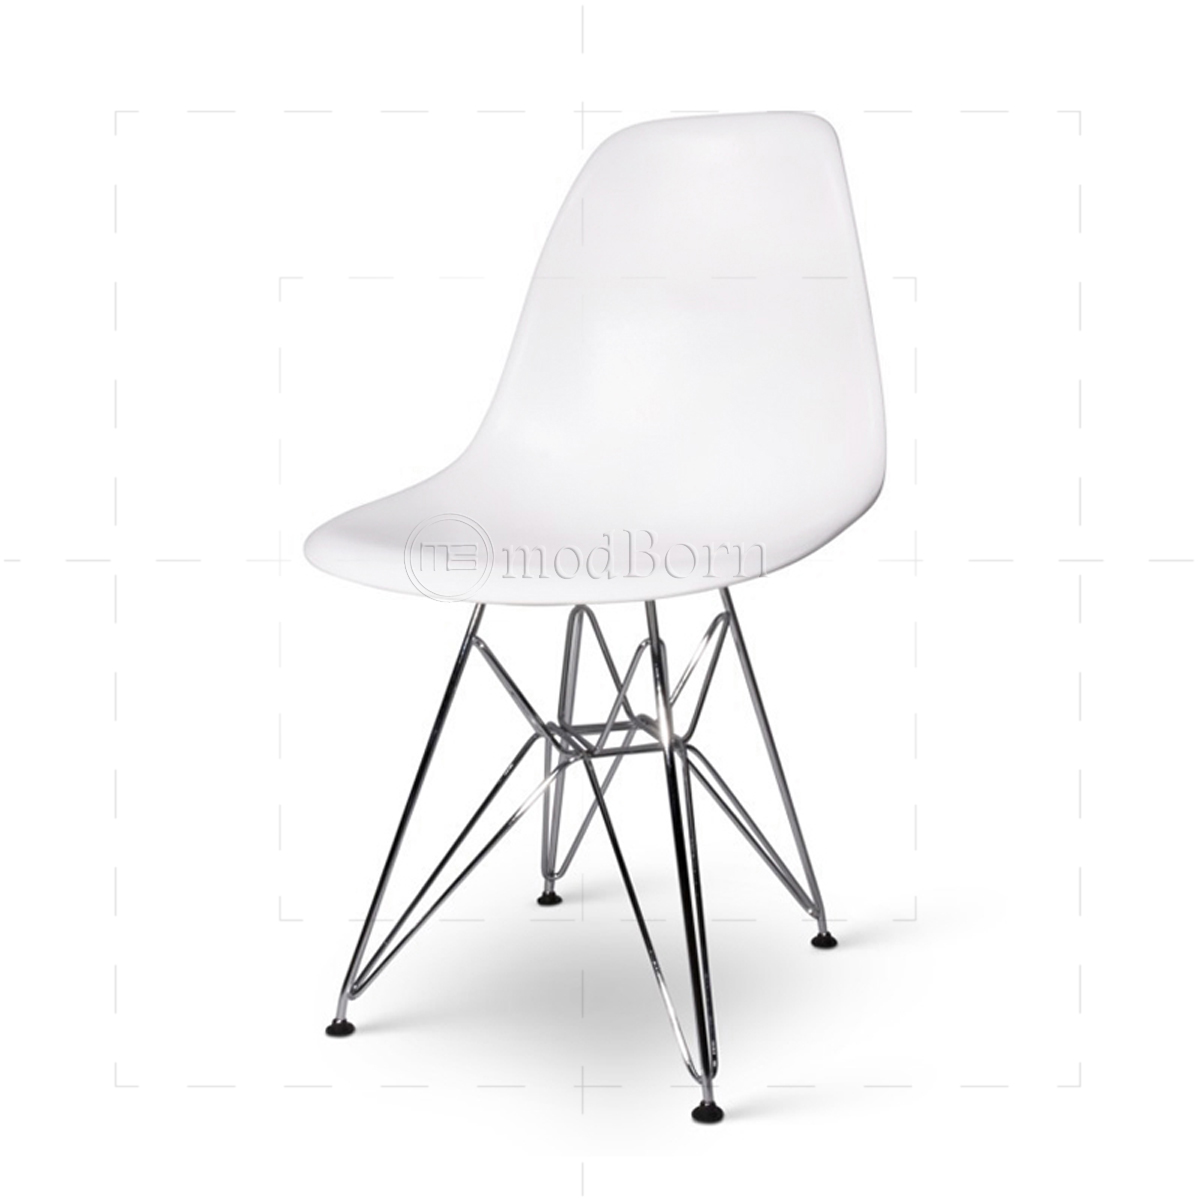 Sensational Eames Style Chair White Home Charles Charles X2 Home Eames Onthecornerstone Fun Painted Chair Ideas Images Onthecornerstoneorg